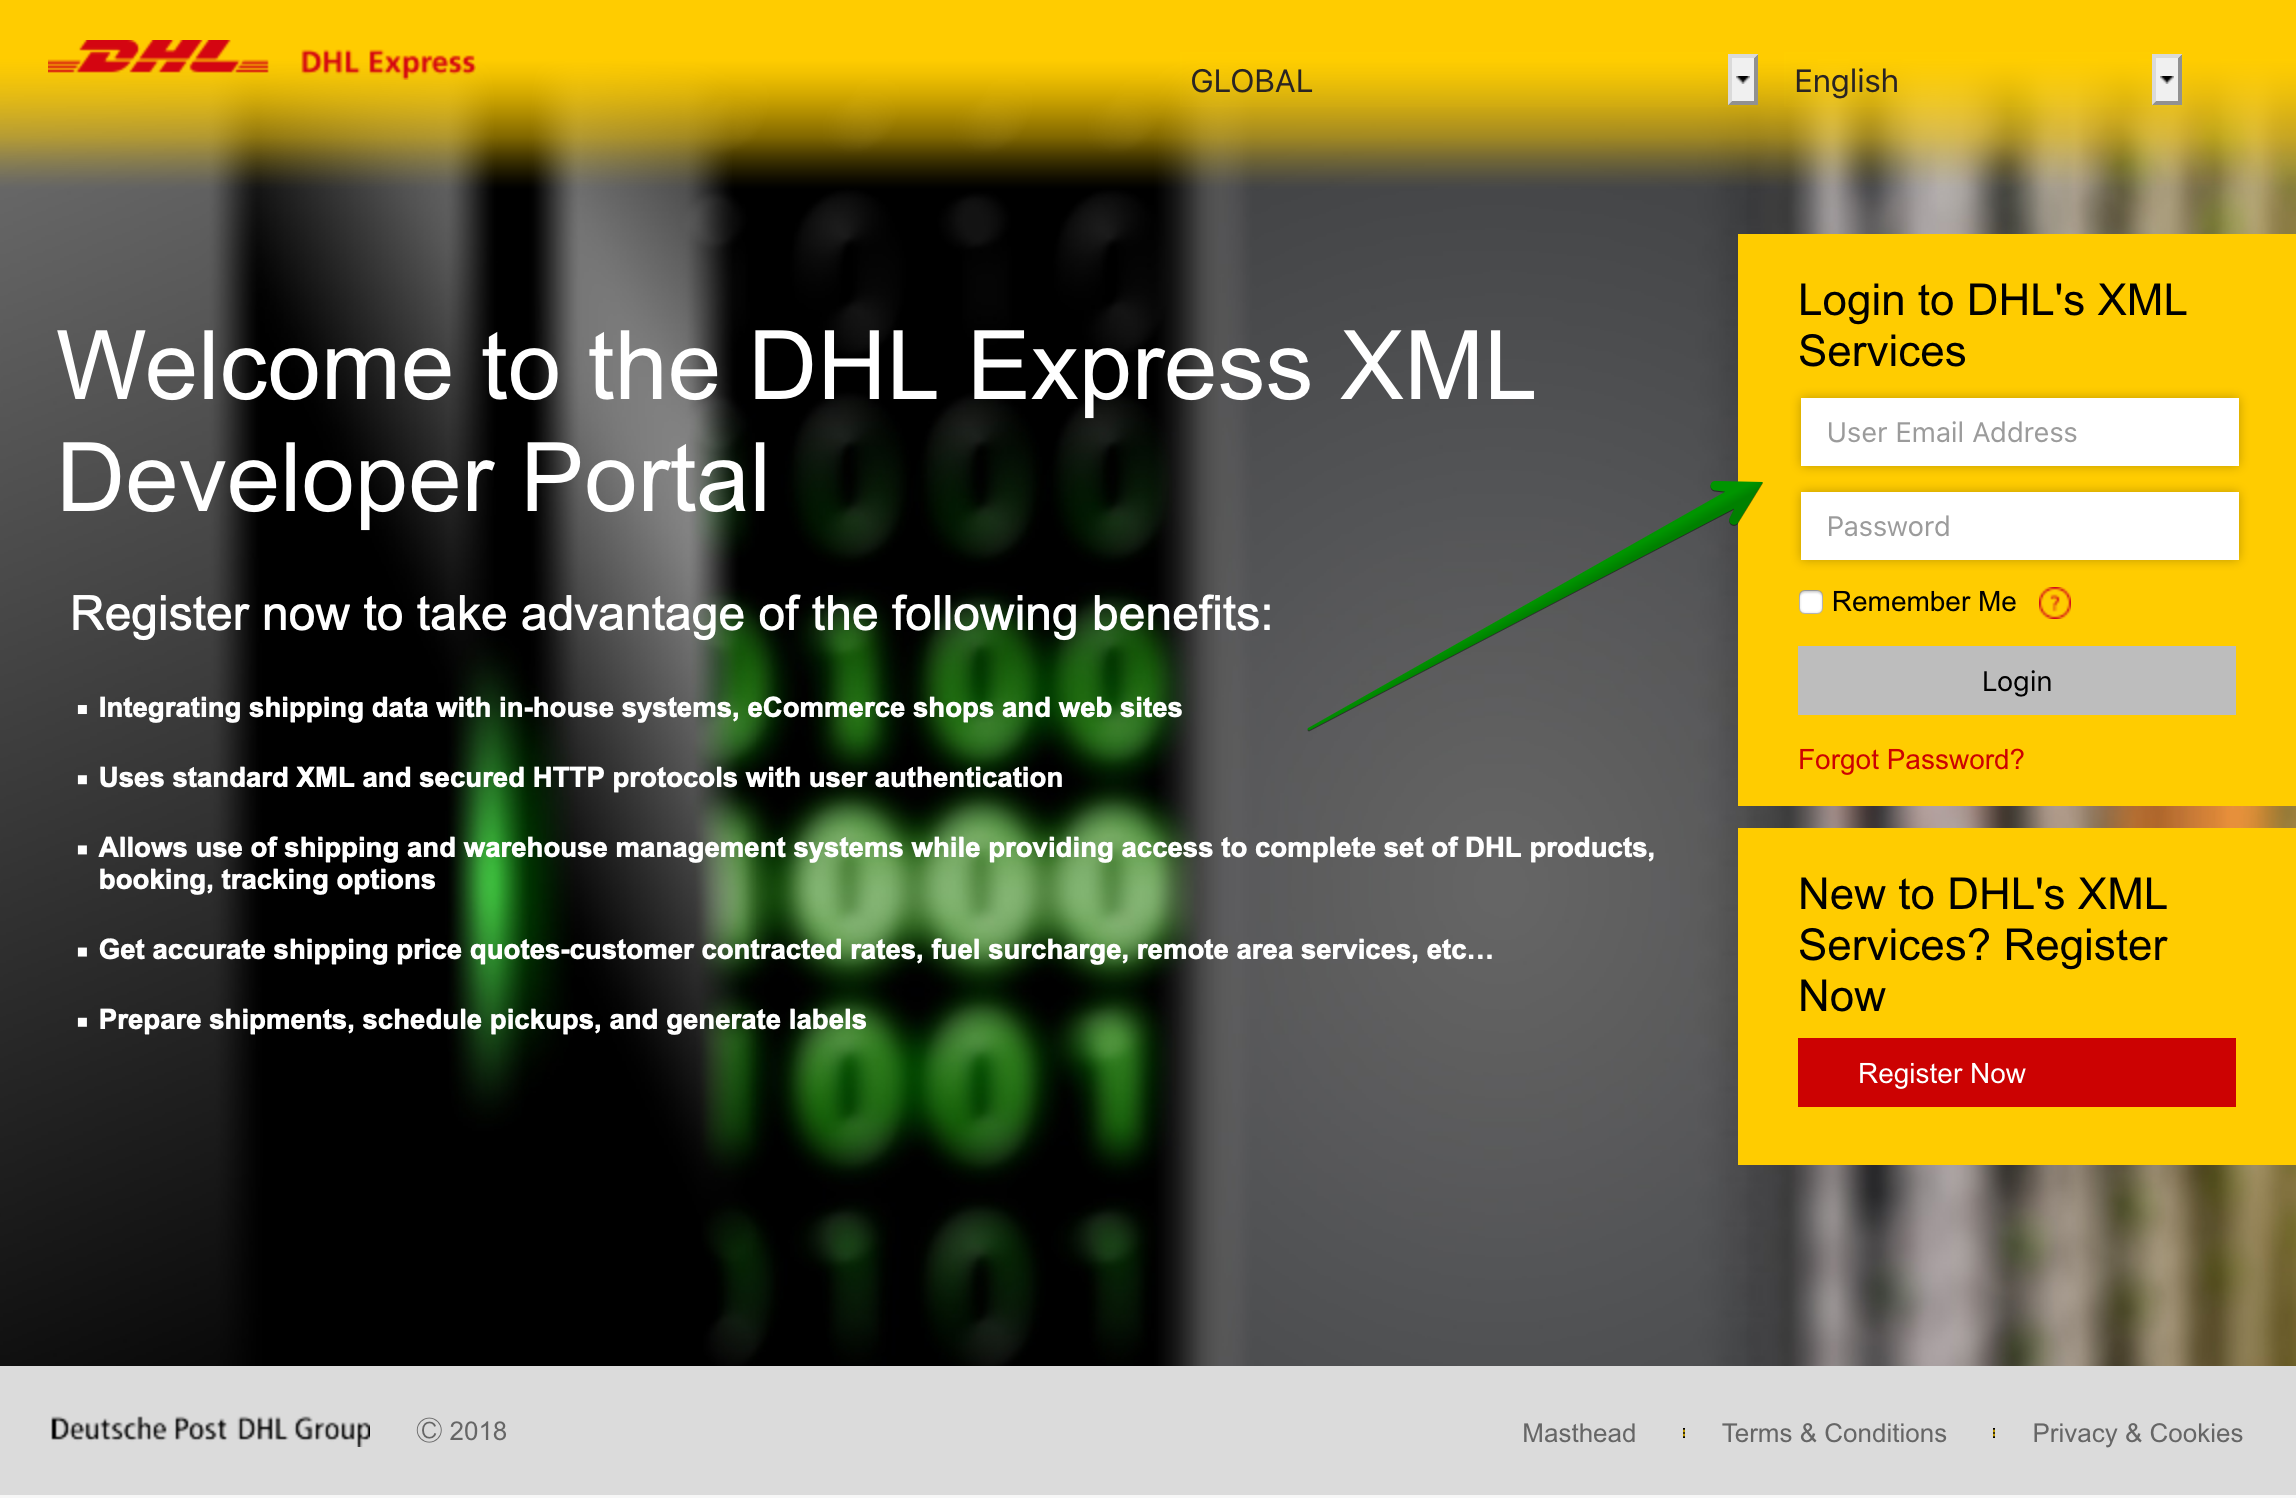 DHL Express - How to create an account? - DHL XML Services login